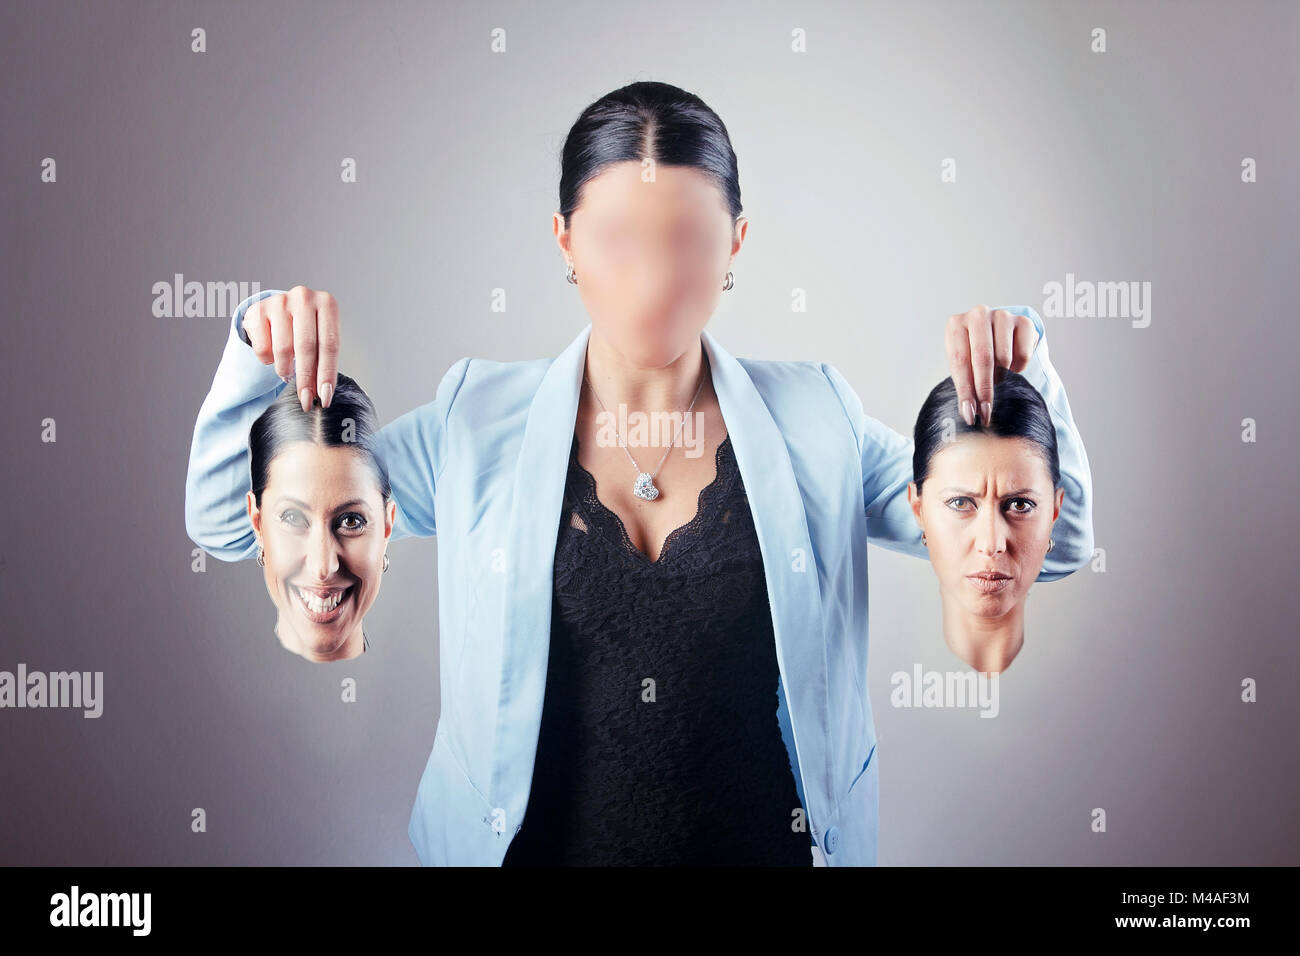 Business woman with the identity disorder - Stock Image